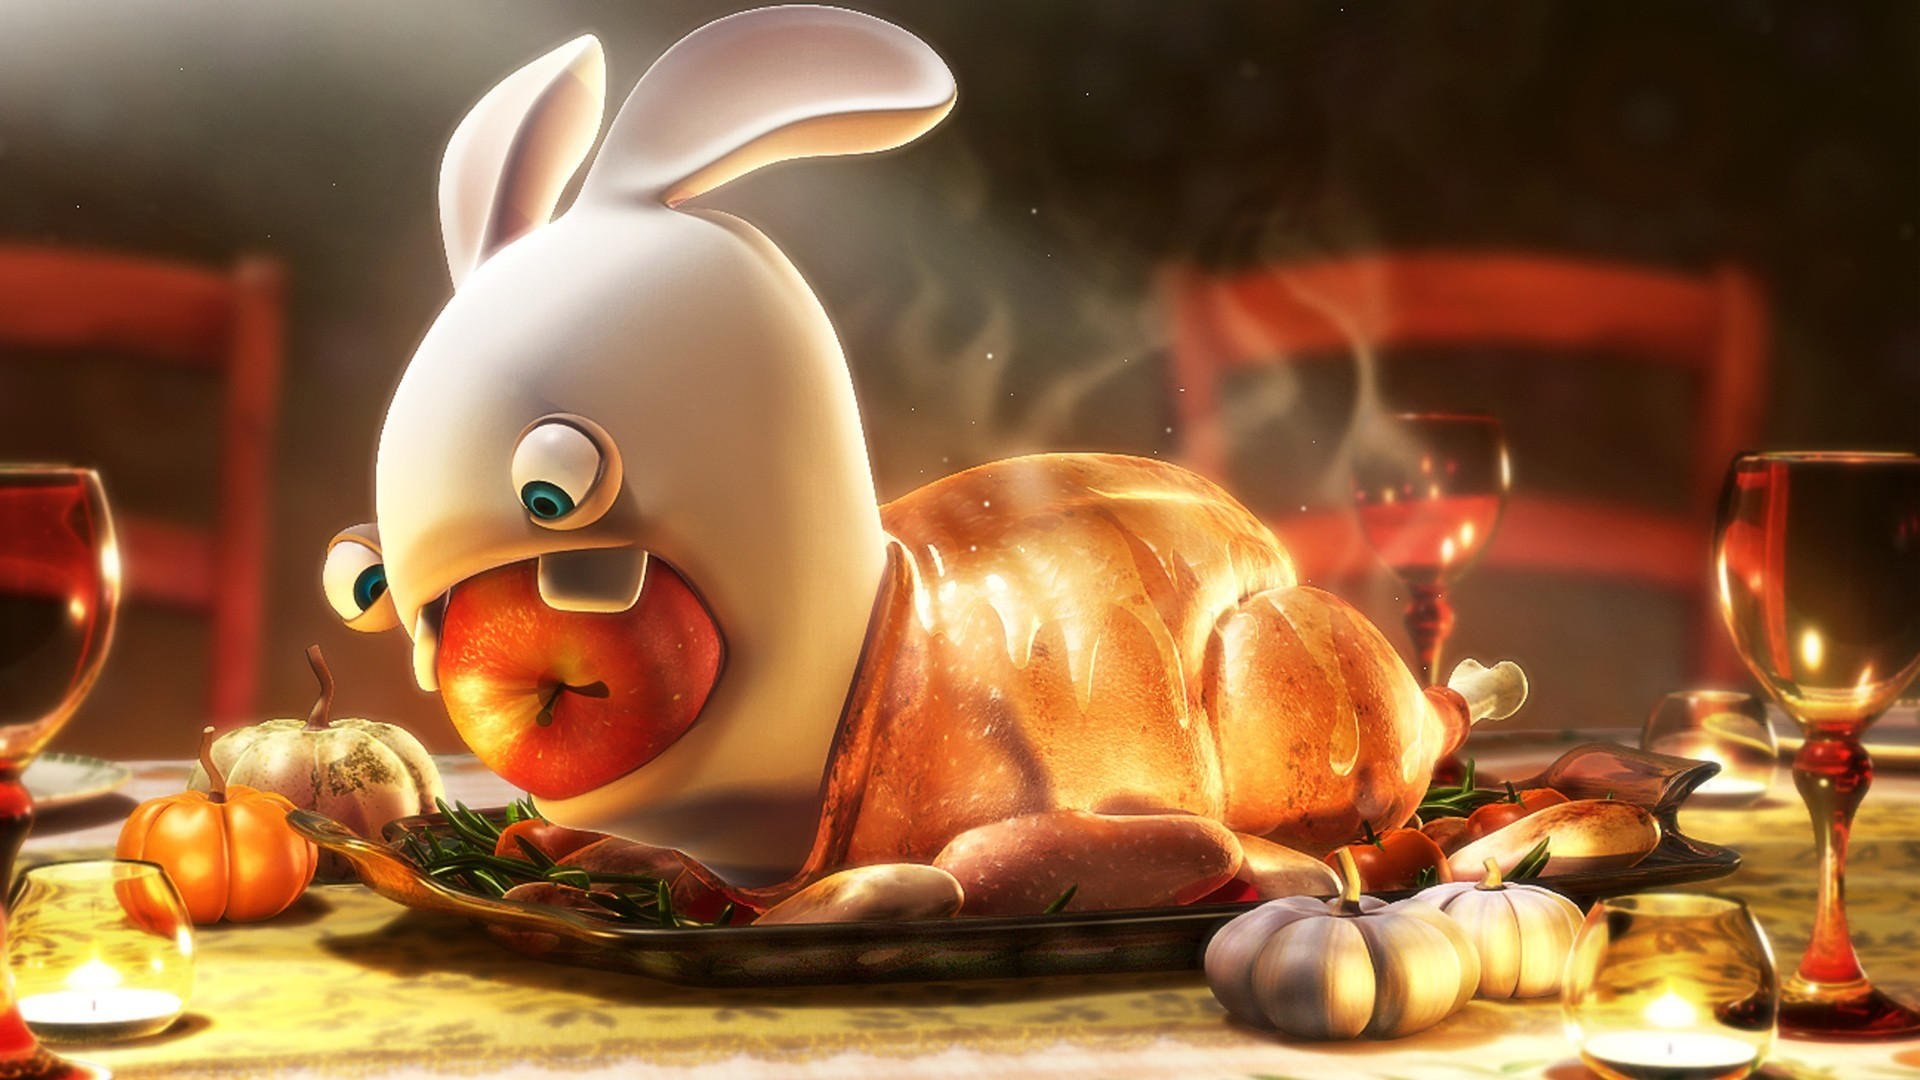 1920x1080 Wallpaper Thanksgiving | Turkey Raving Rabbit Wallpapers